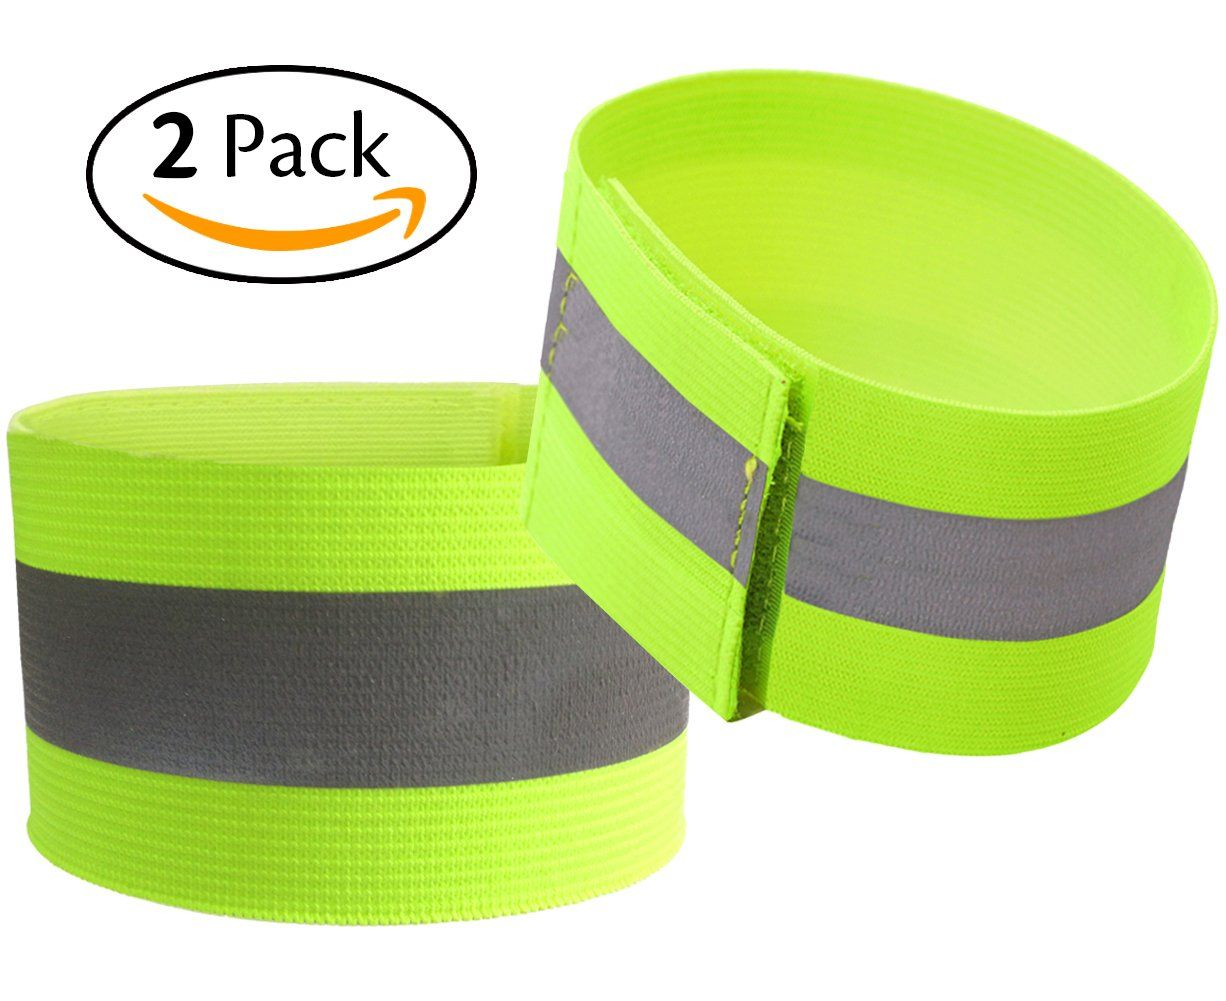 Safety Clothing Pack Of 2 High Visibility Safety Reflective Vest Lightweight Adjustable Elastic Reflective Bands For Wrist Arm Ankle Leg